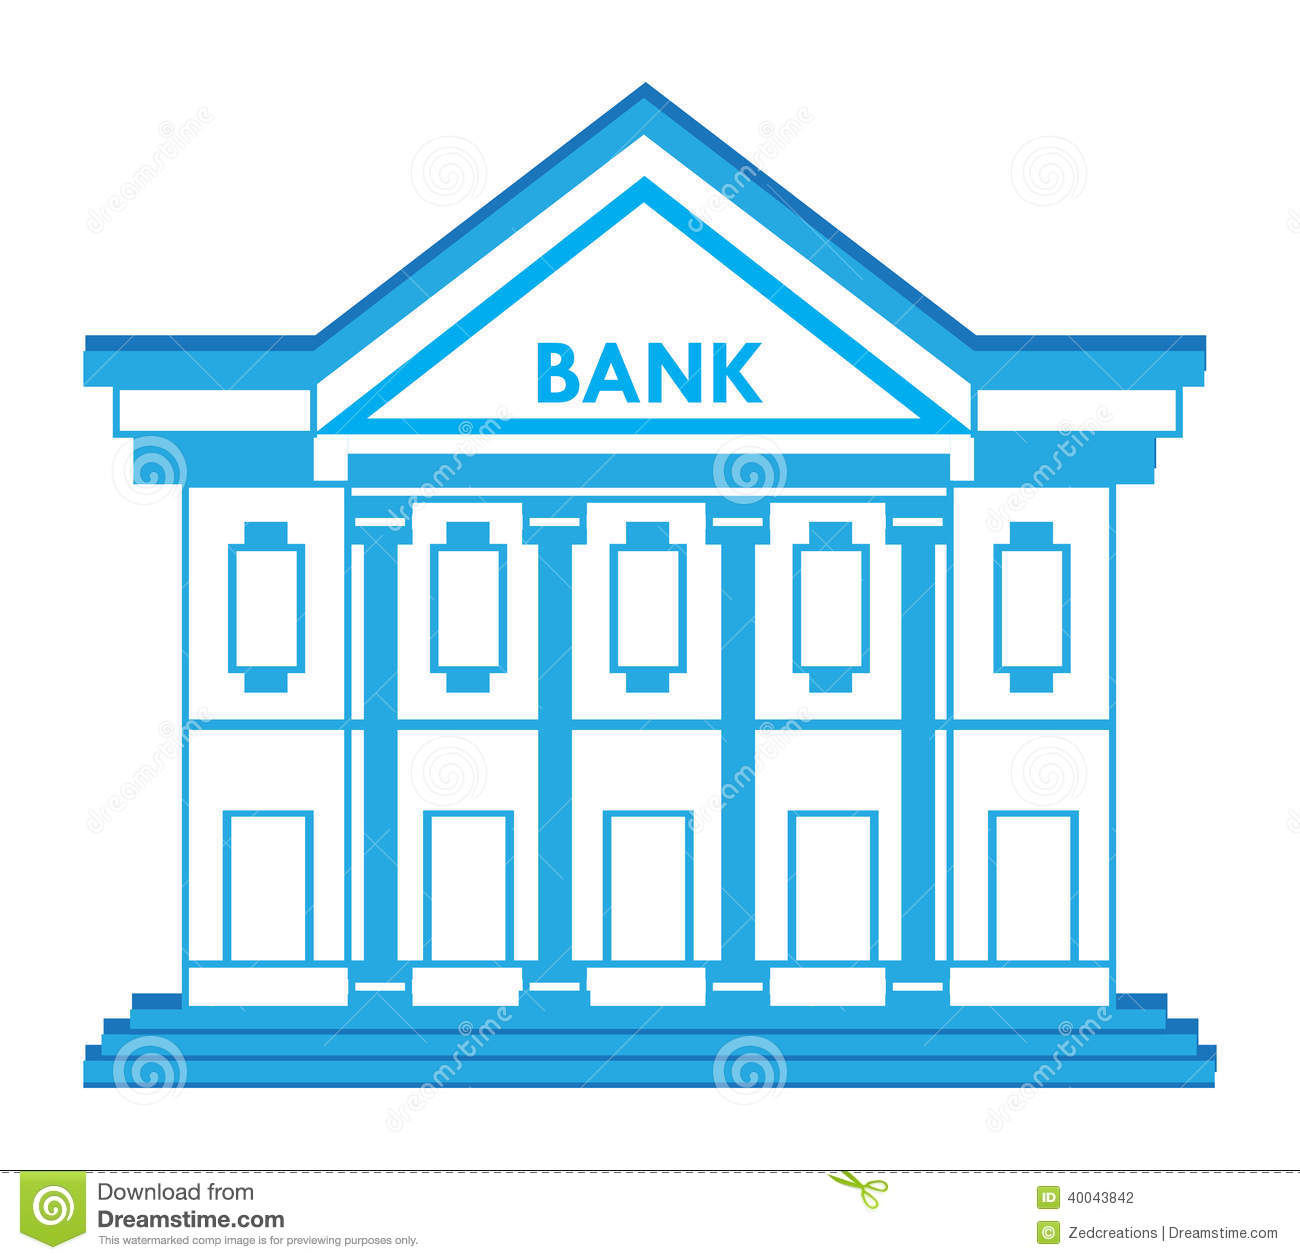 bank building icon - photo #11